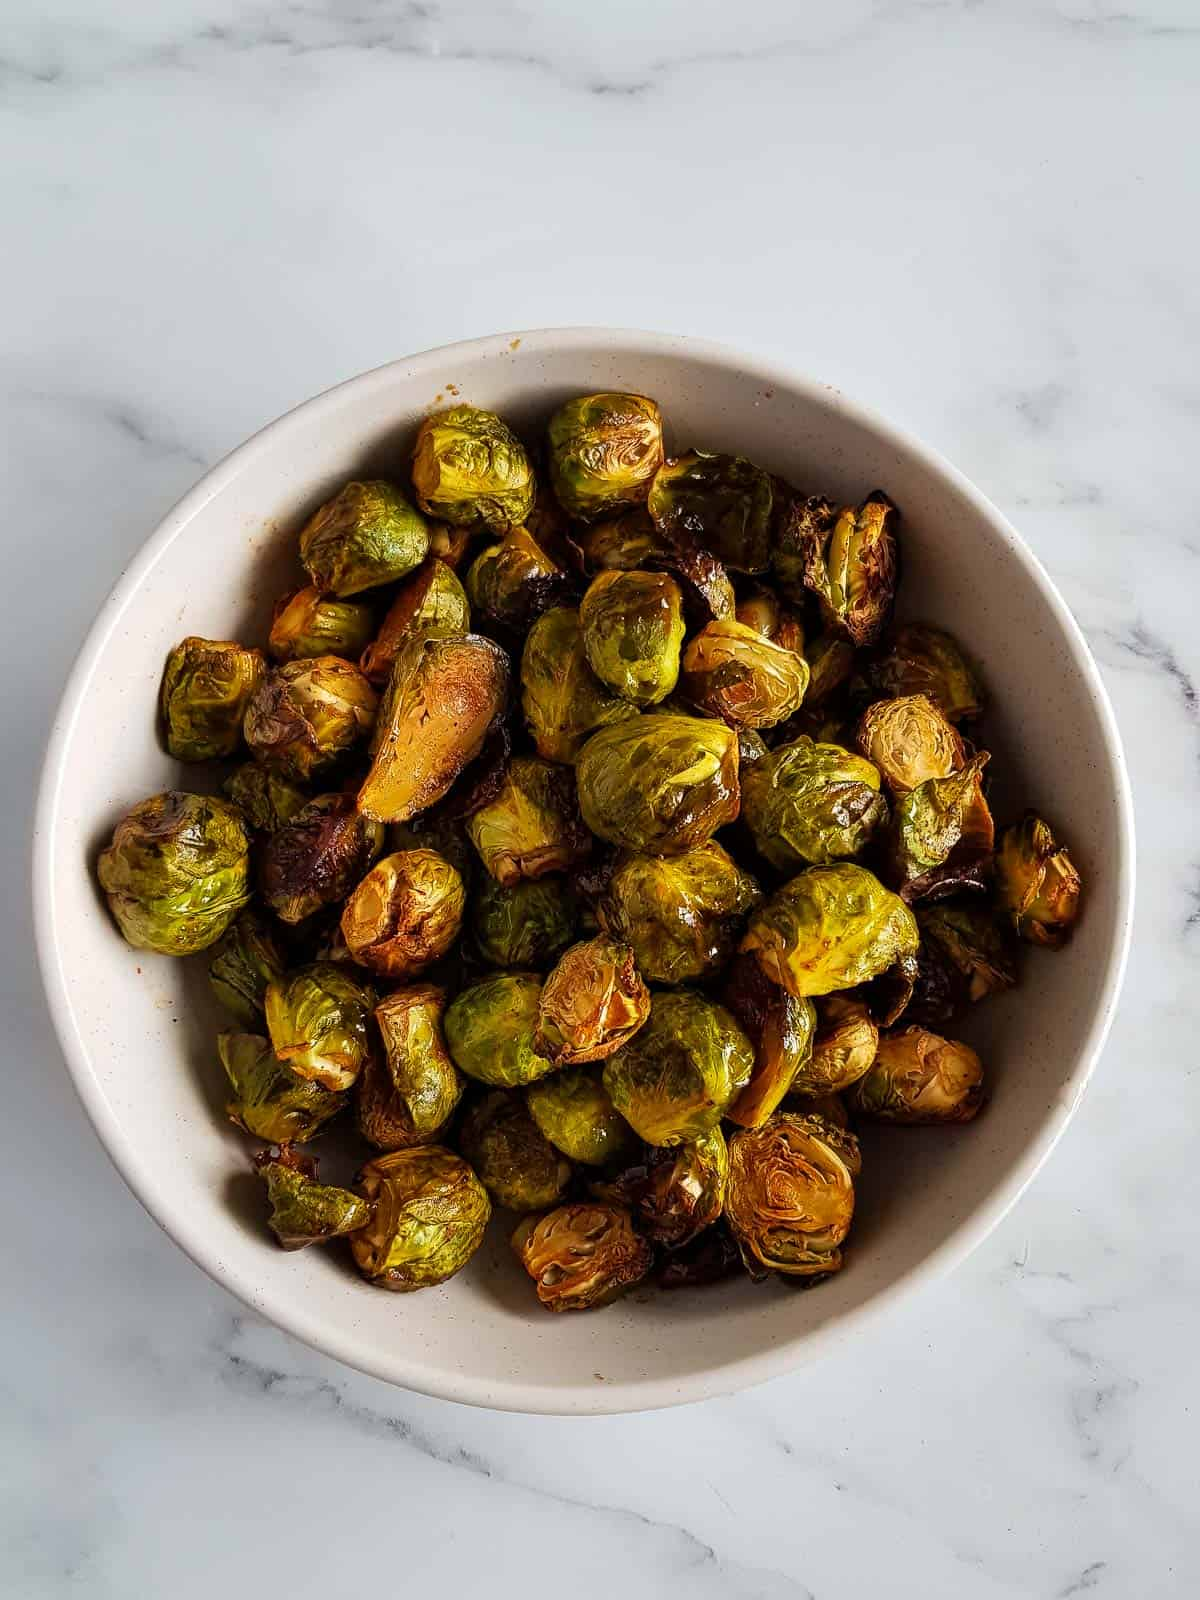 Brussels sprouts with honey and sriracha in a bowl.